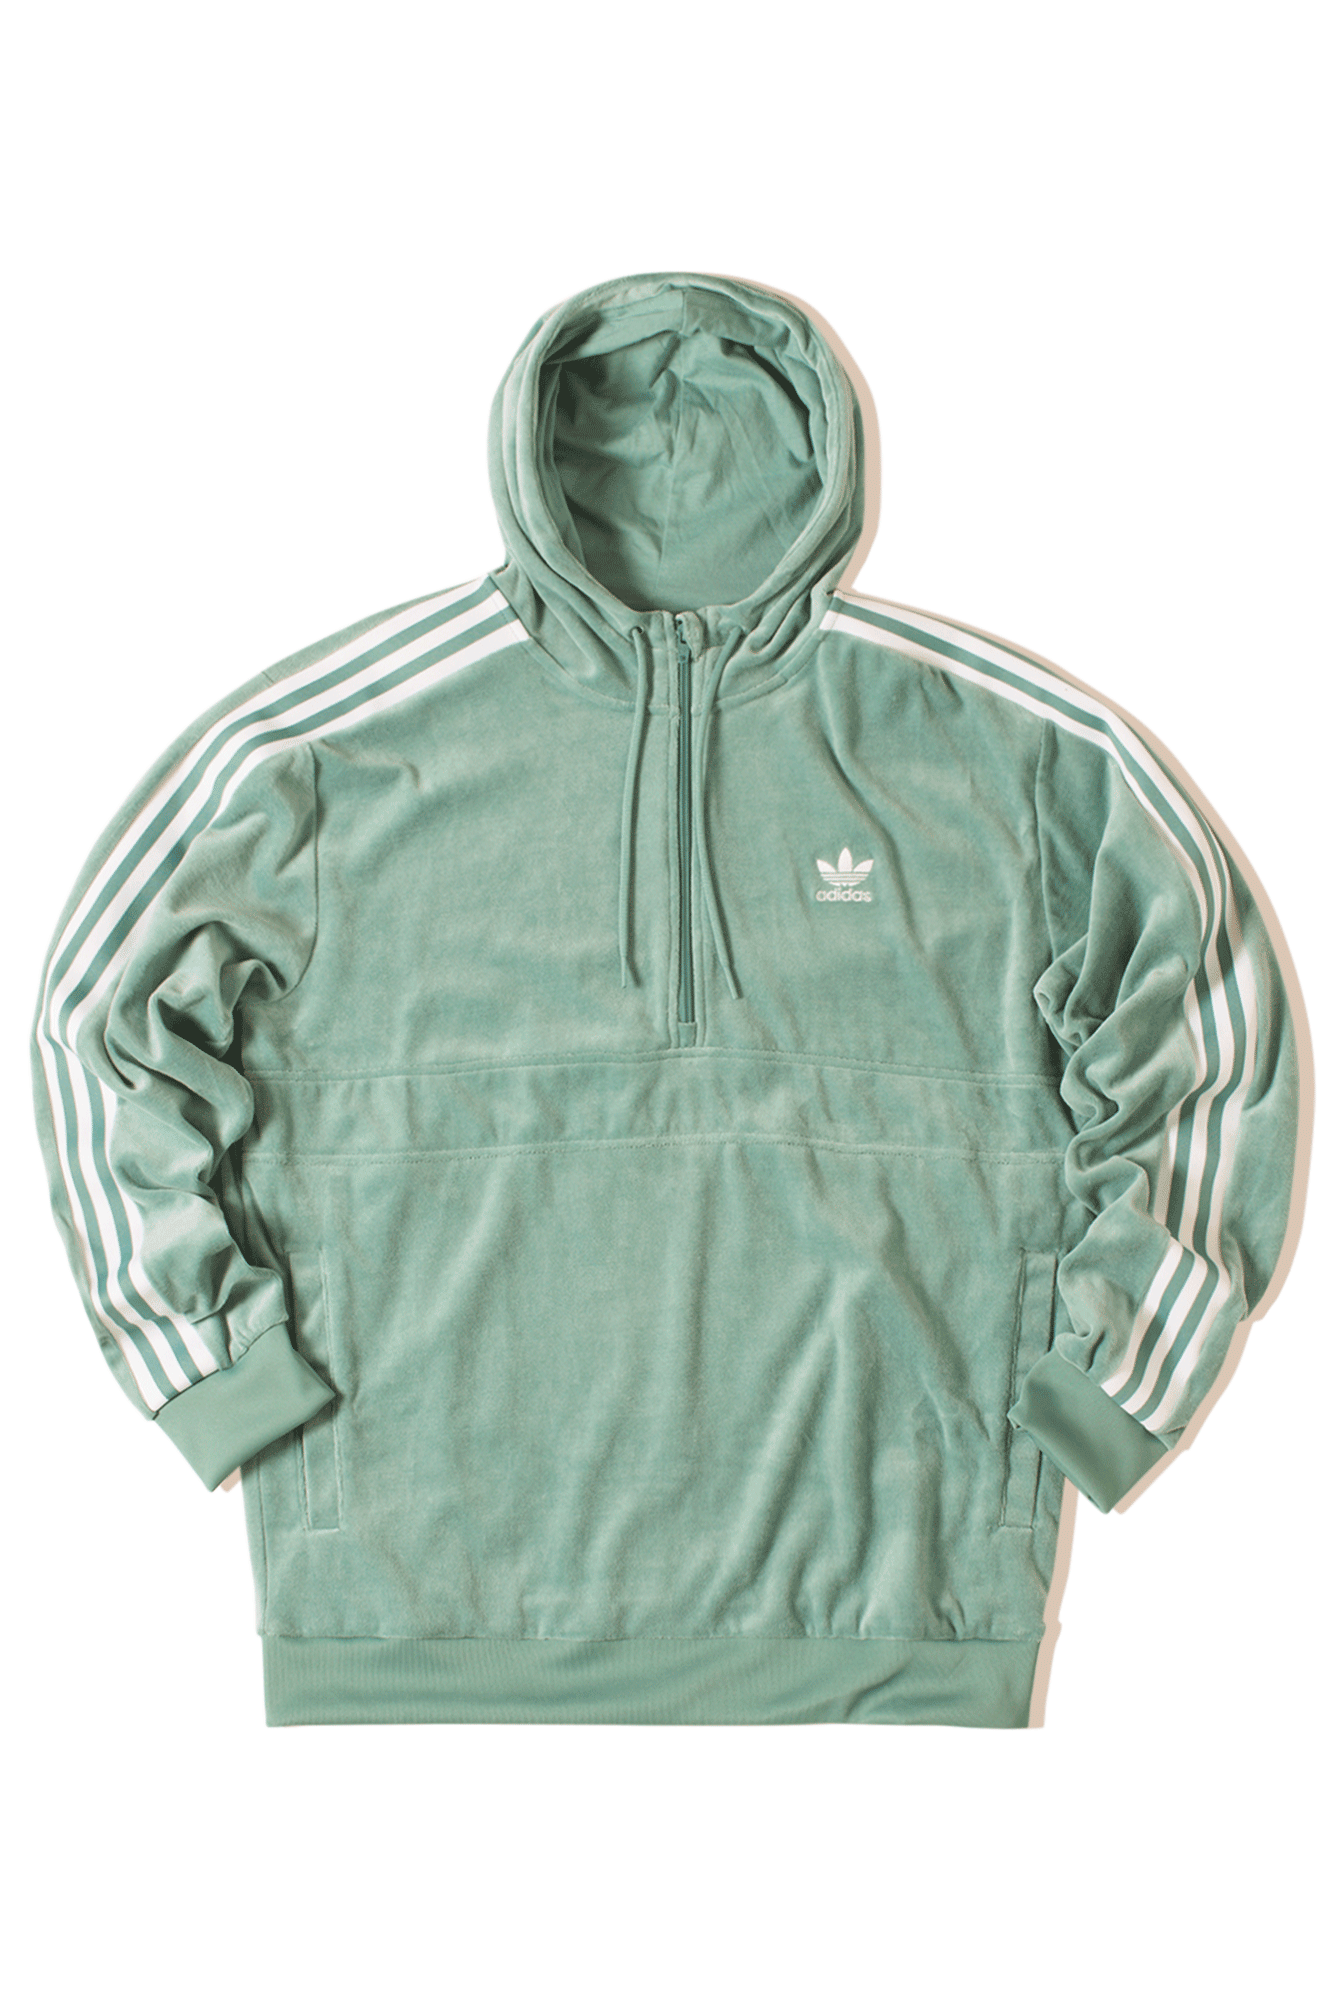 Adidas Originals Felpe Cozy Halfzip Verde DV1624#000#C0013#XS - One Block Down